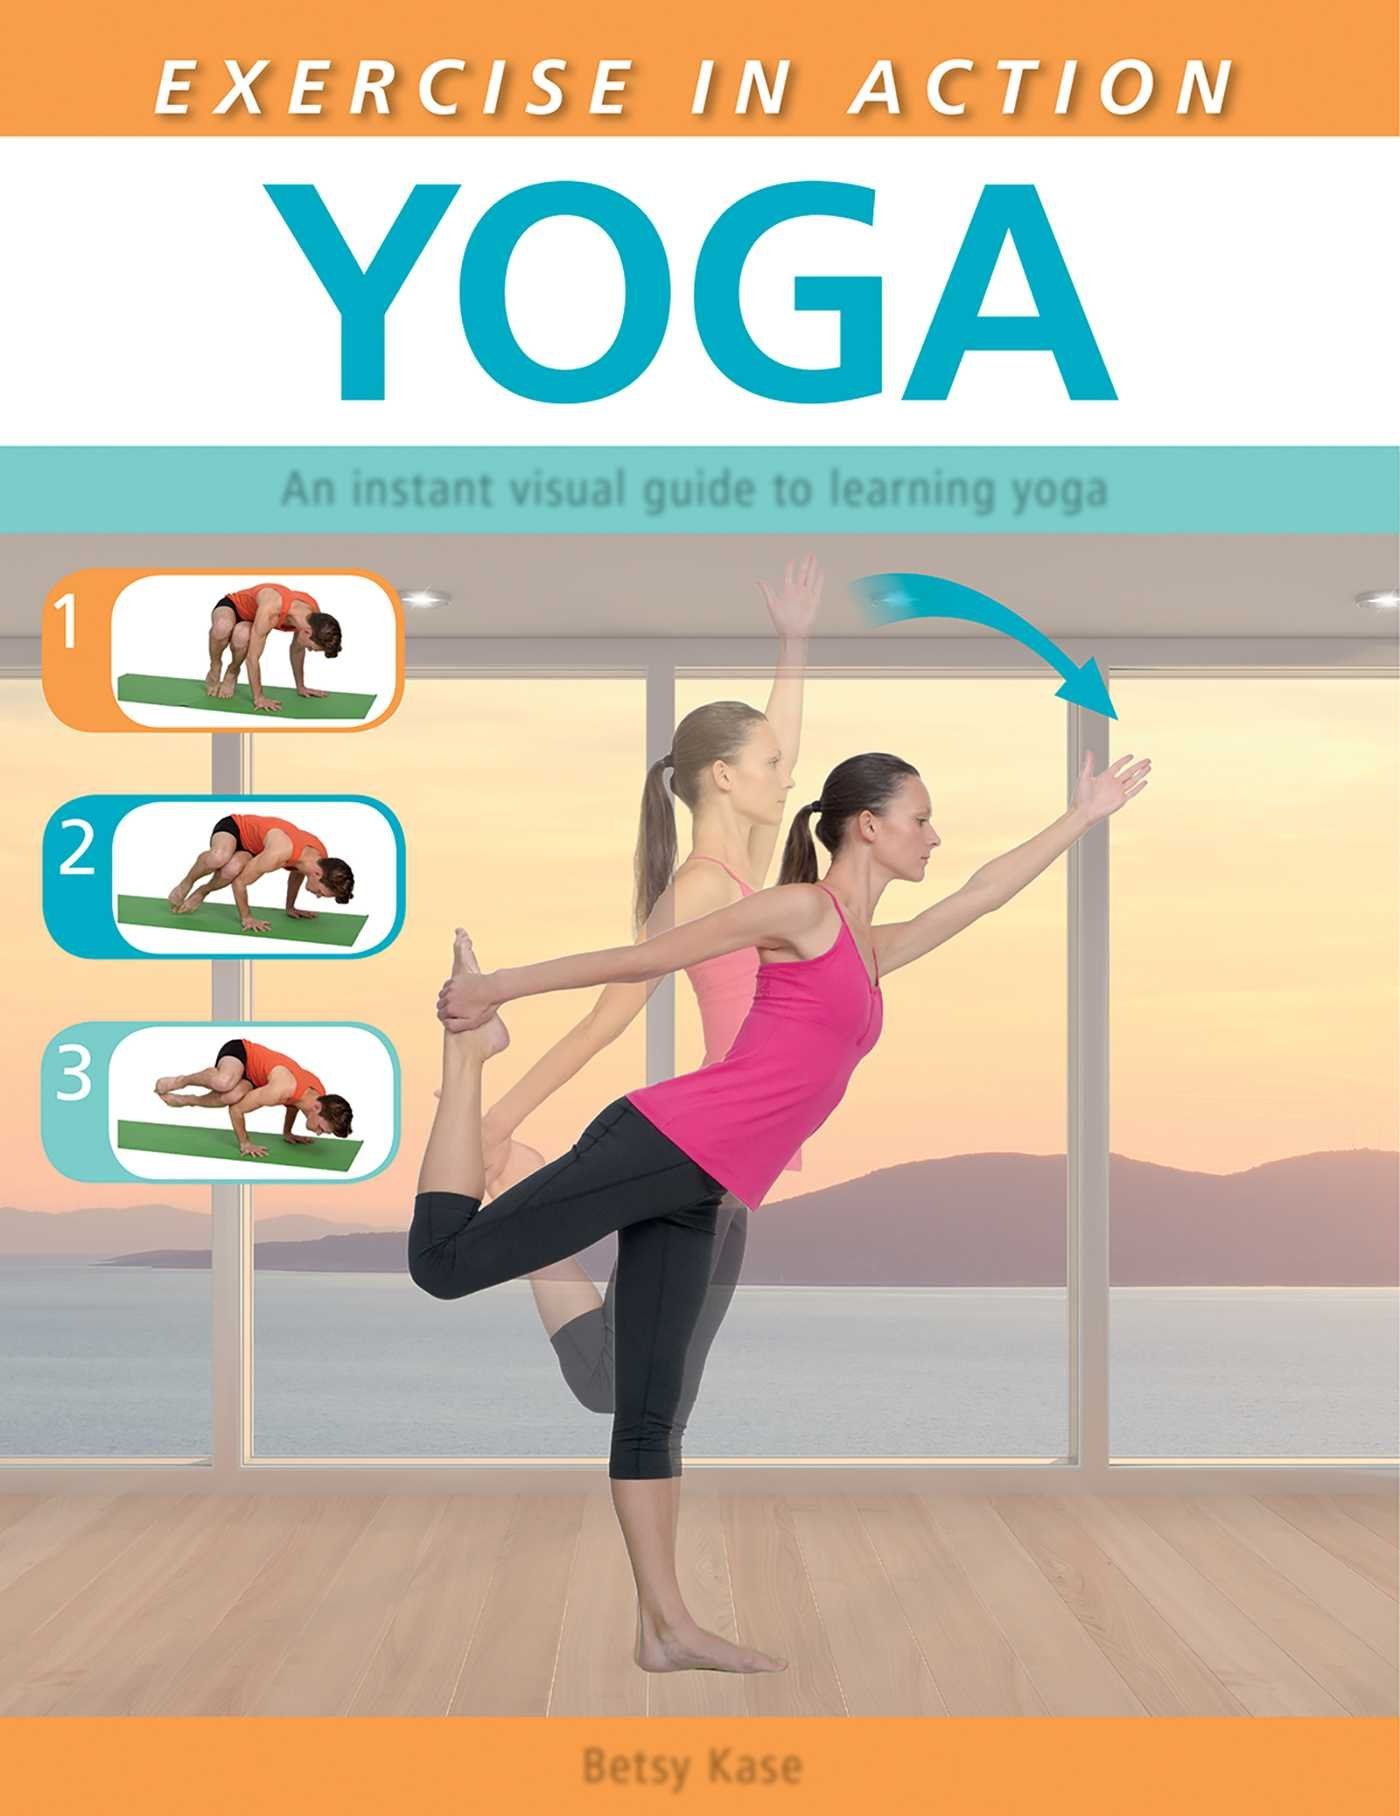 Exercise In Action Yoga Kase Betsy 9781626860544 Amazon Com Books